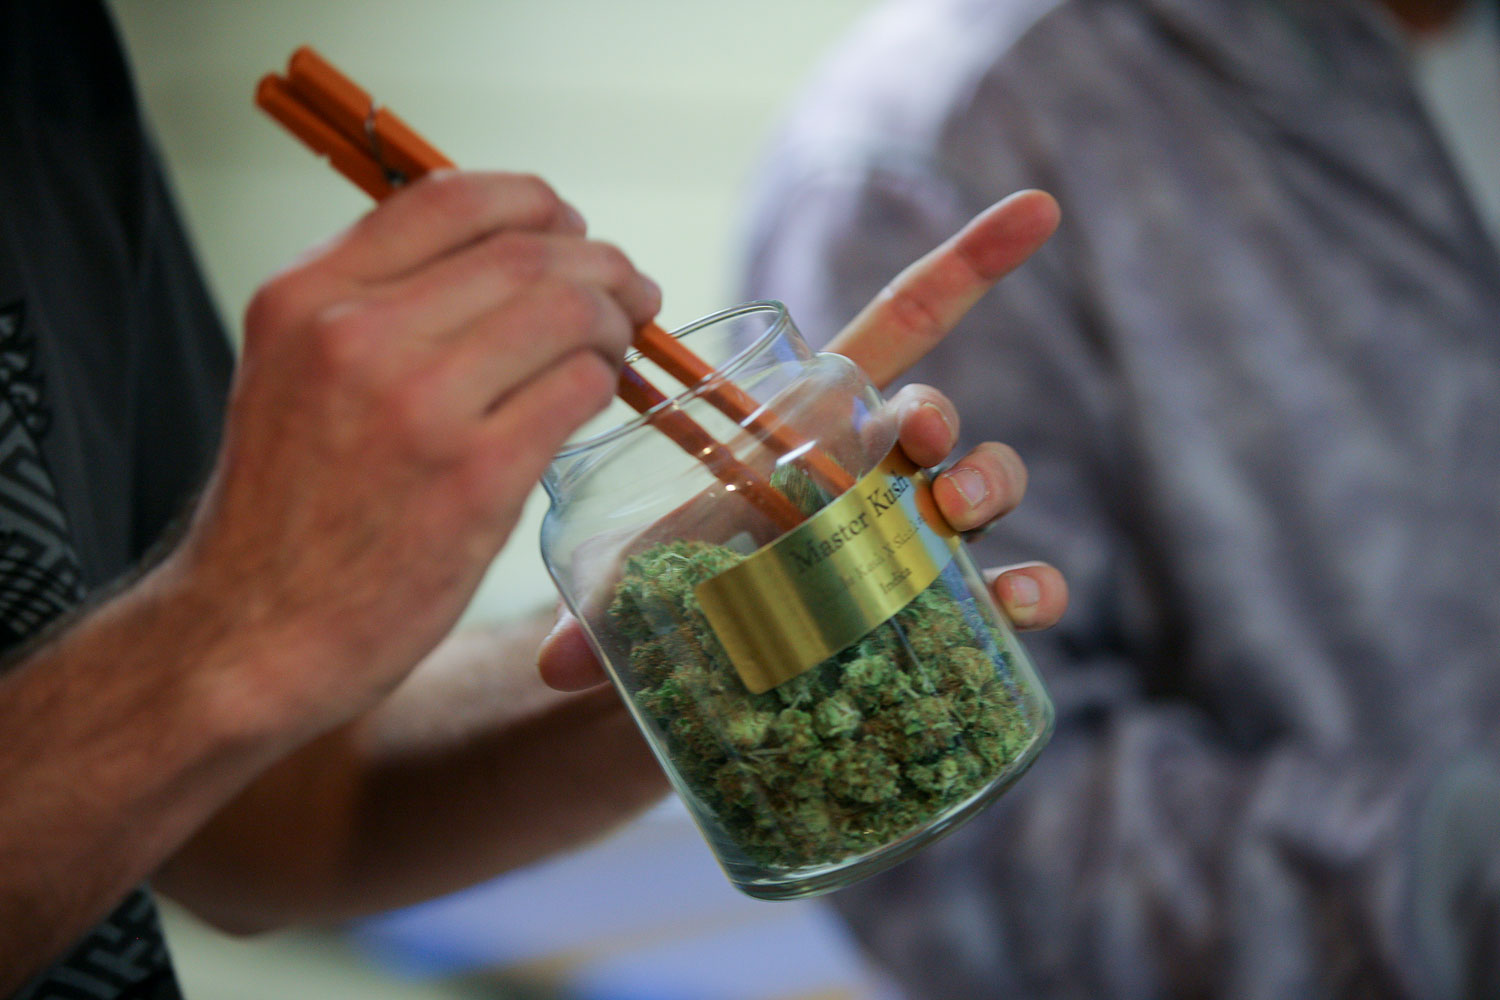 An employee pulls marijuana out of a large canister for a customer at the LoDo Wellness Center in downtown Denver, Jan. 9, 2014.